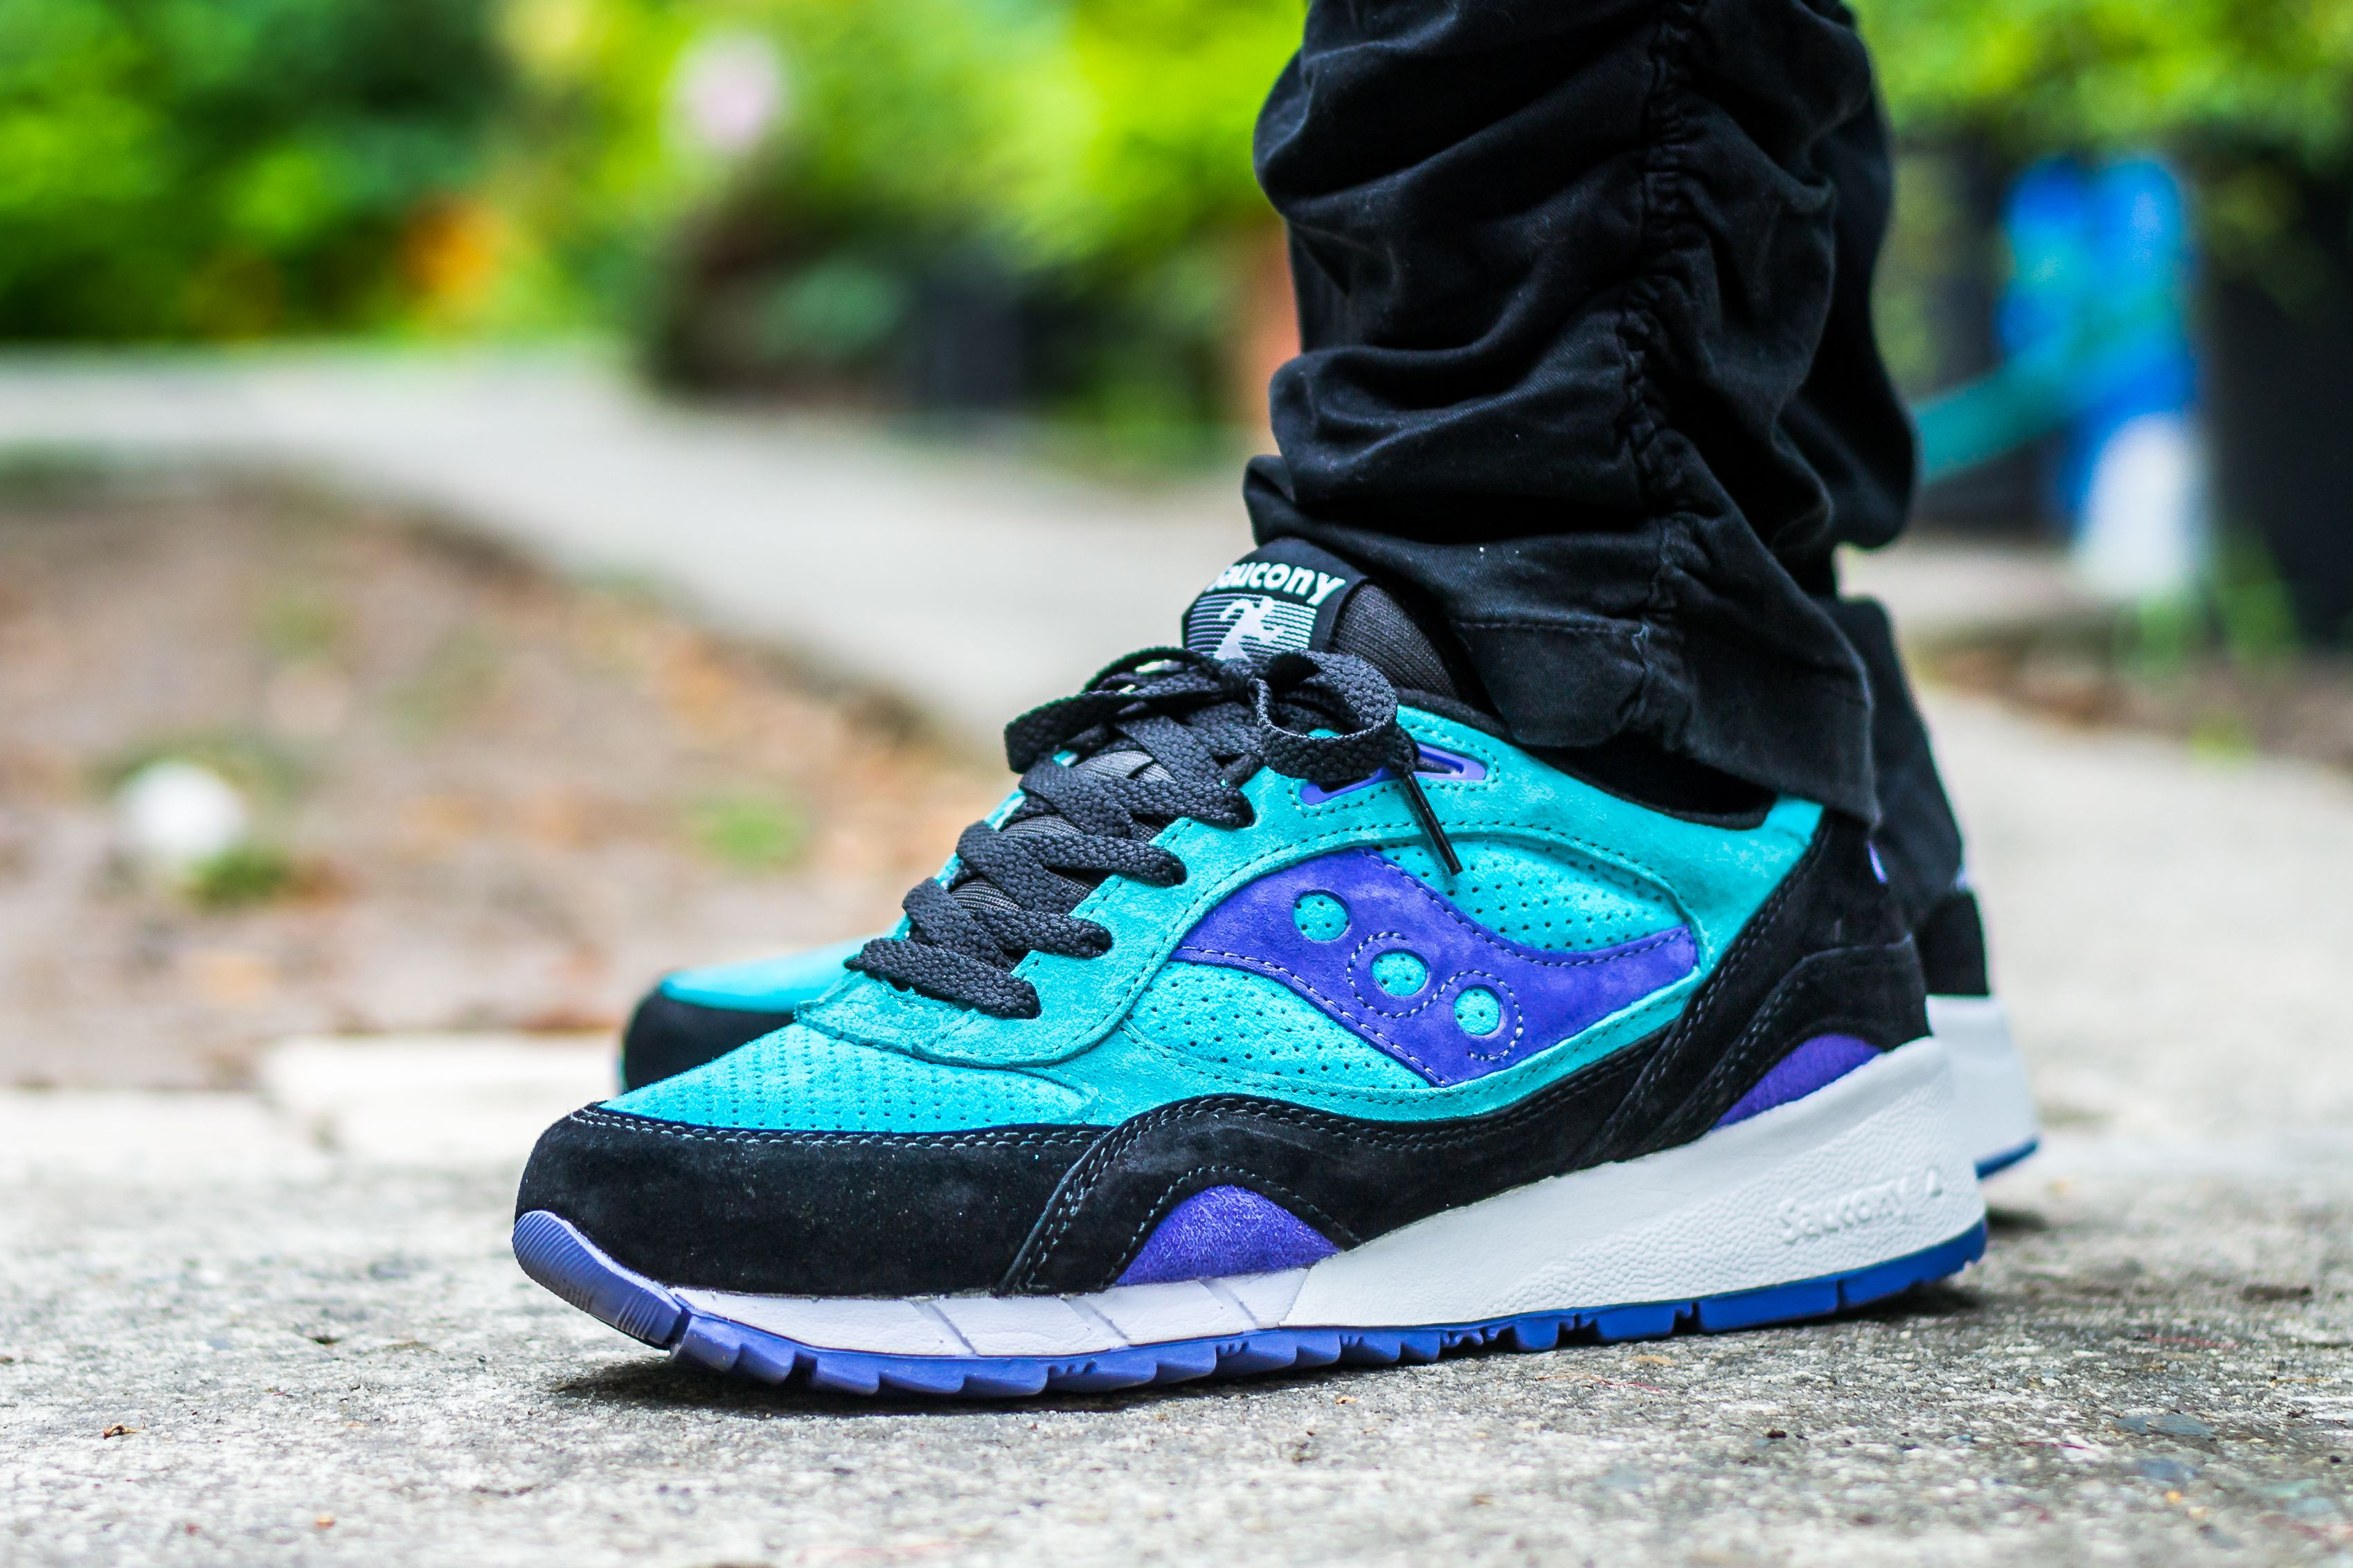 on sale 246b0 19ea2 Click to see my video review of the Saucony Shadow 6000 Bermuda Pack and find  out where to buy a pair yourself